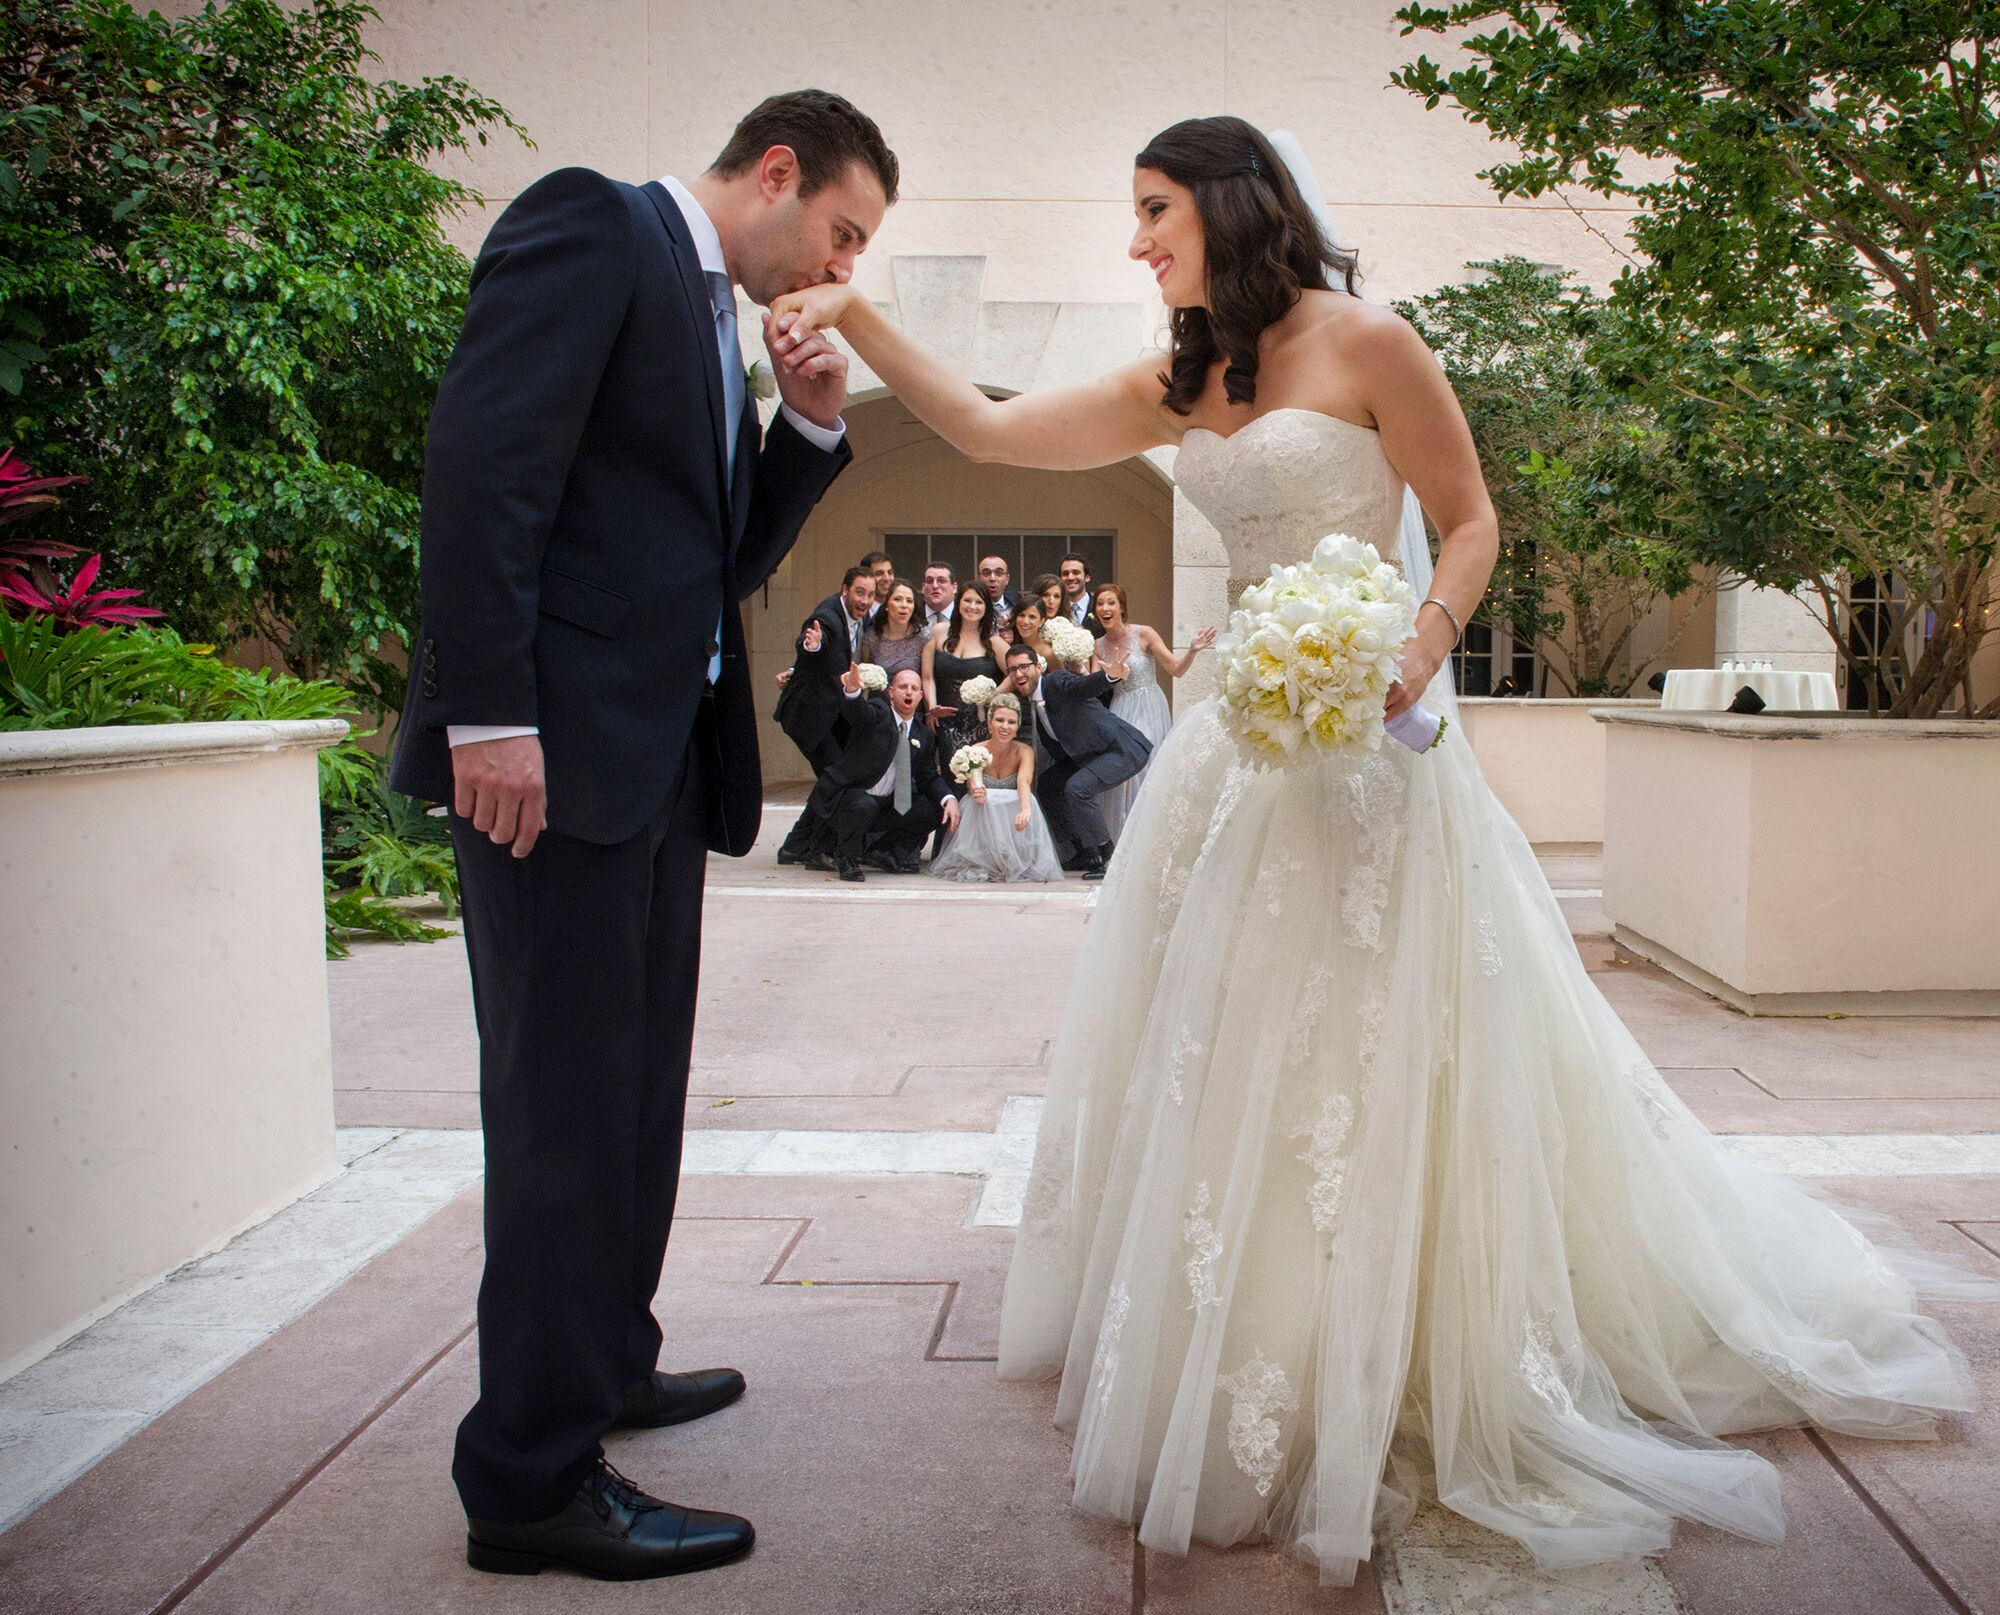 A Traditional Jewish Wedding At Hyatt Regency Coral Gables